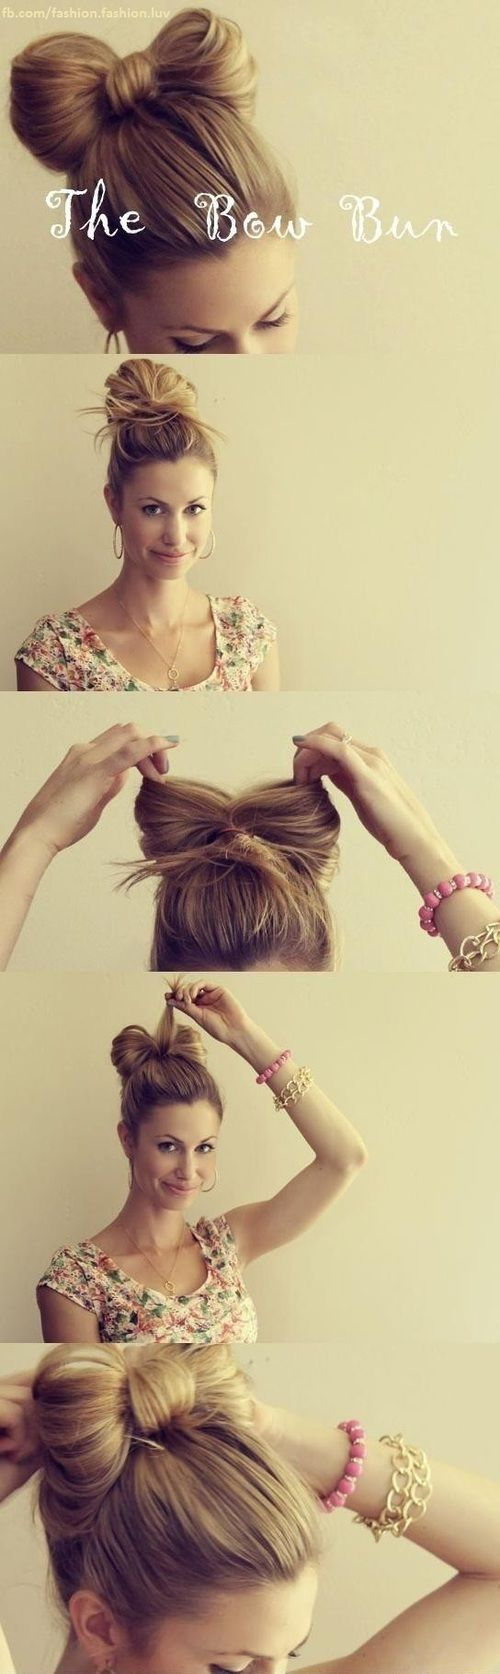 bow bun #hair